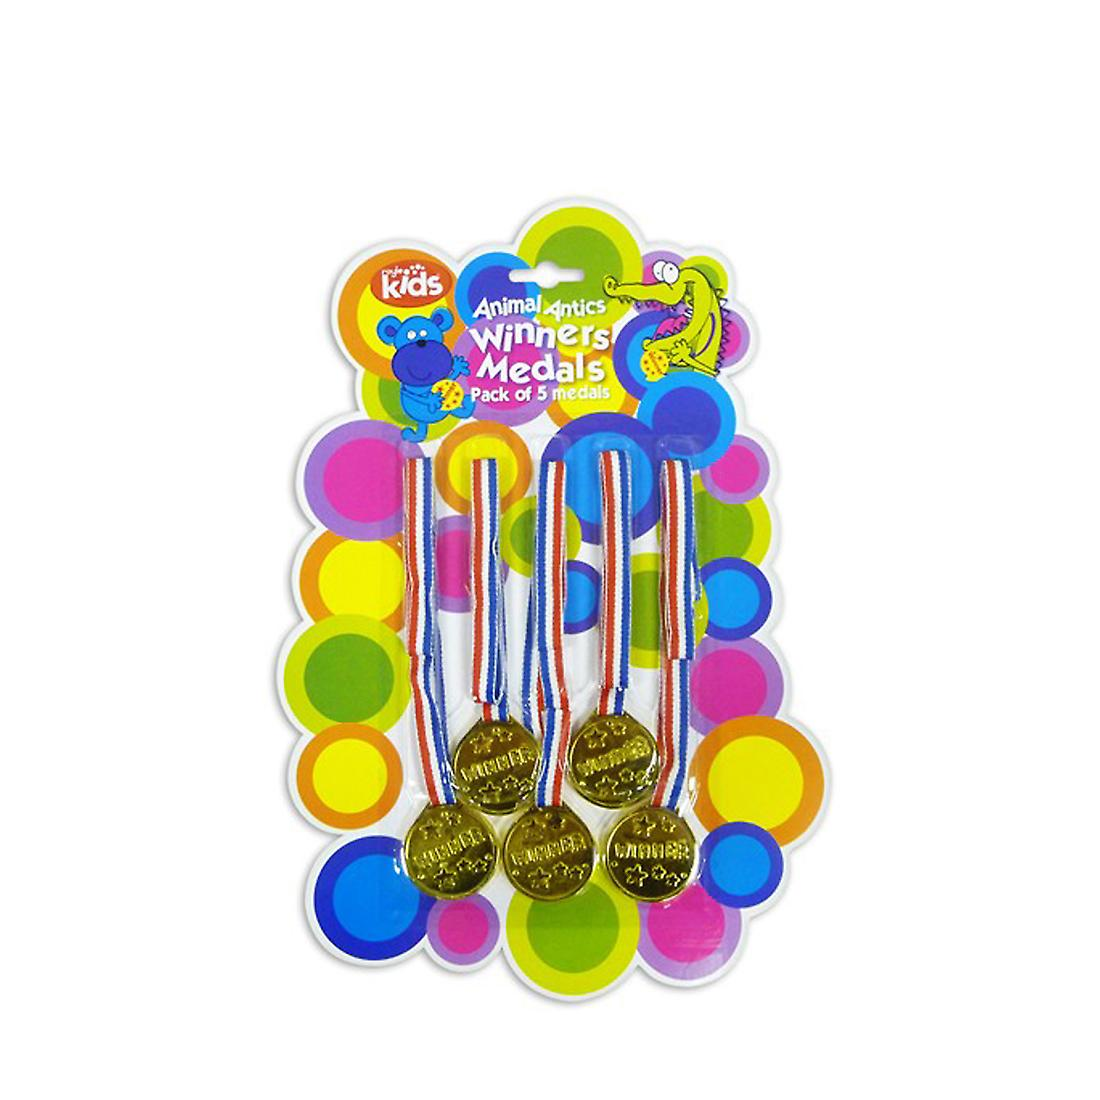 Winners Medals Pack of 5 Fun Gold for Parties Games Competitions